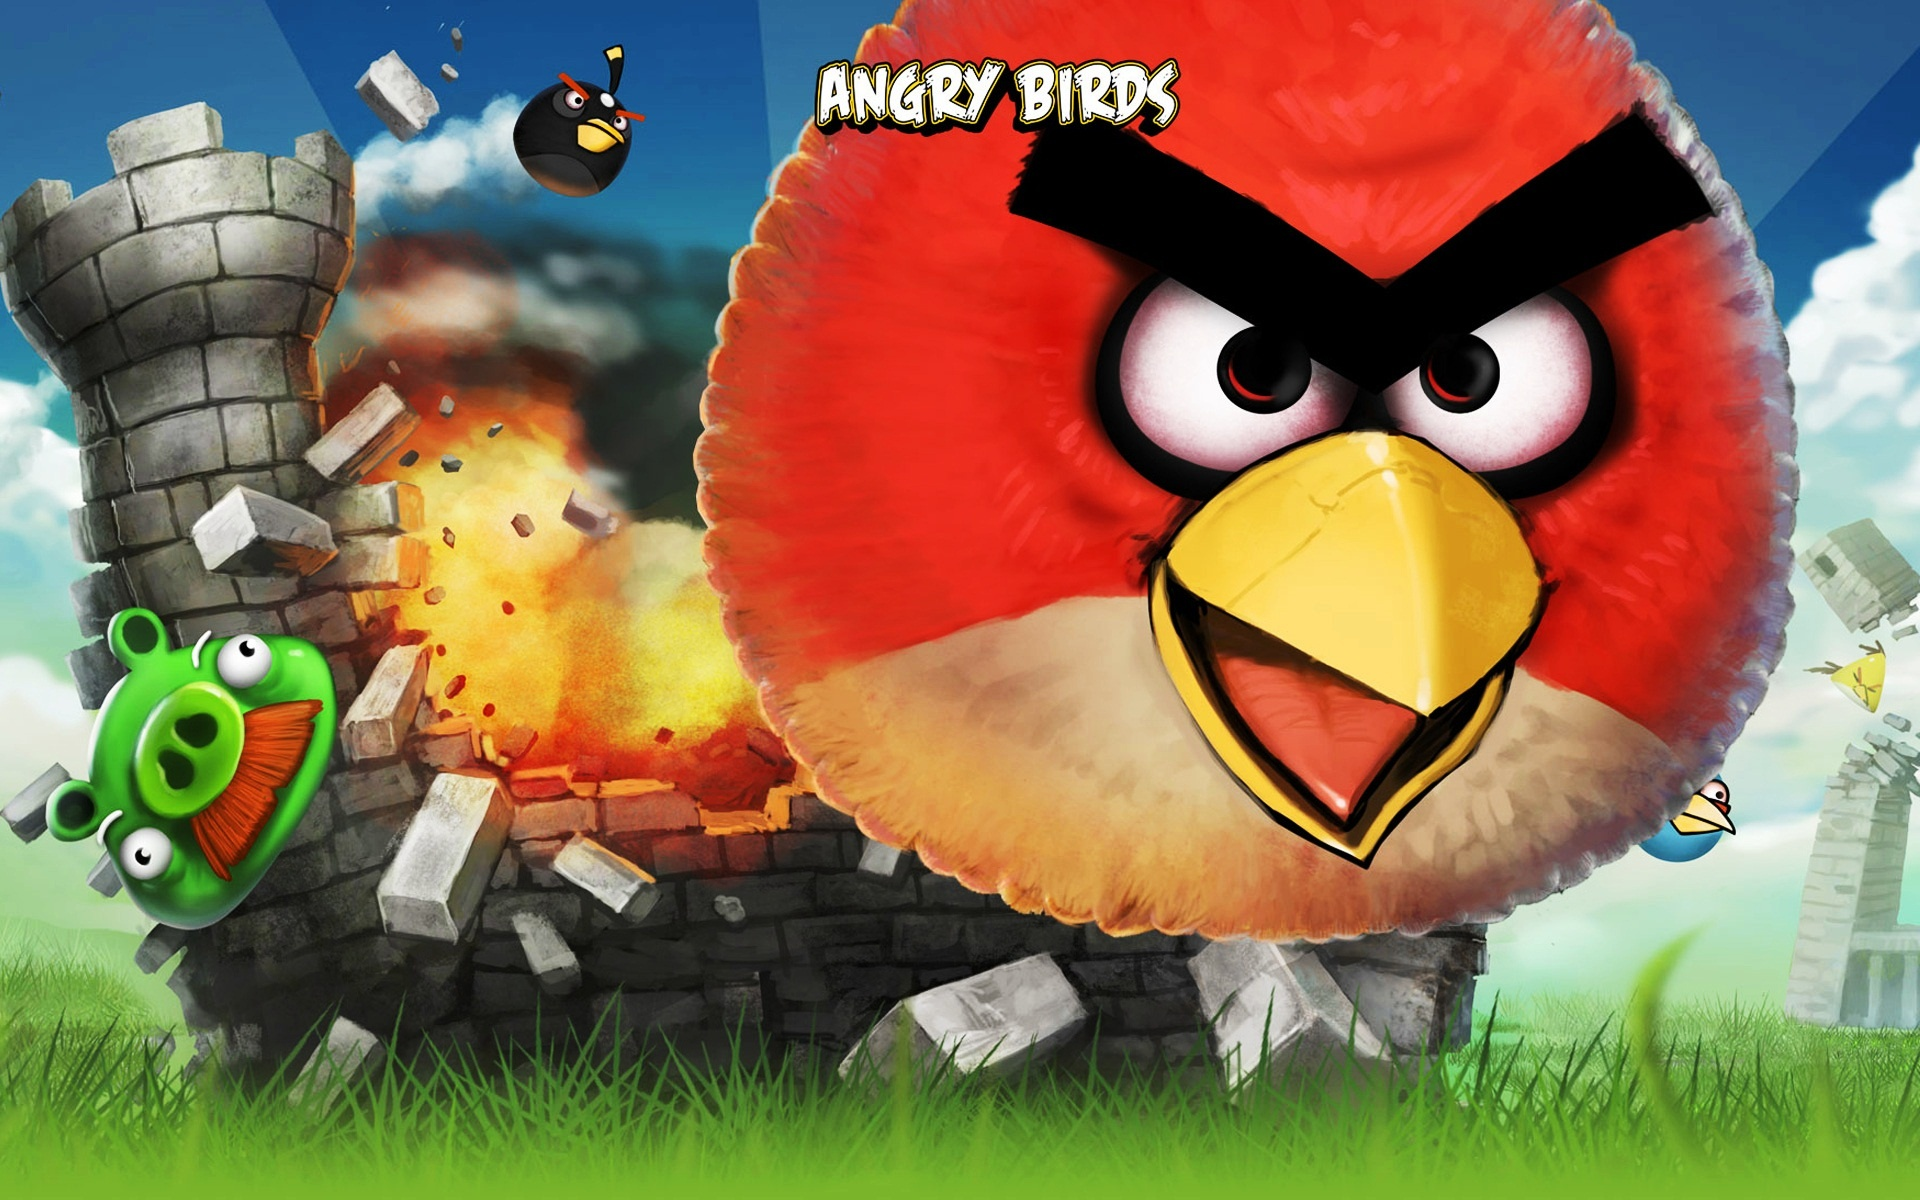 Angry Birds iPhone Game Wallpapers HD Wallpapers 1920x1200